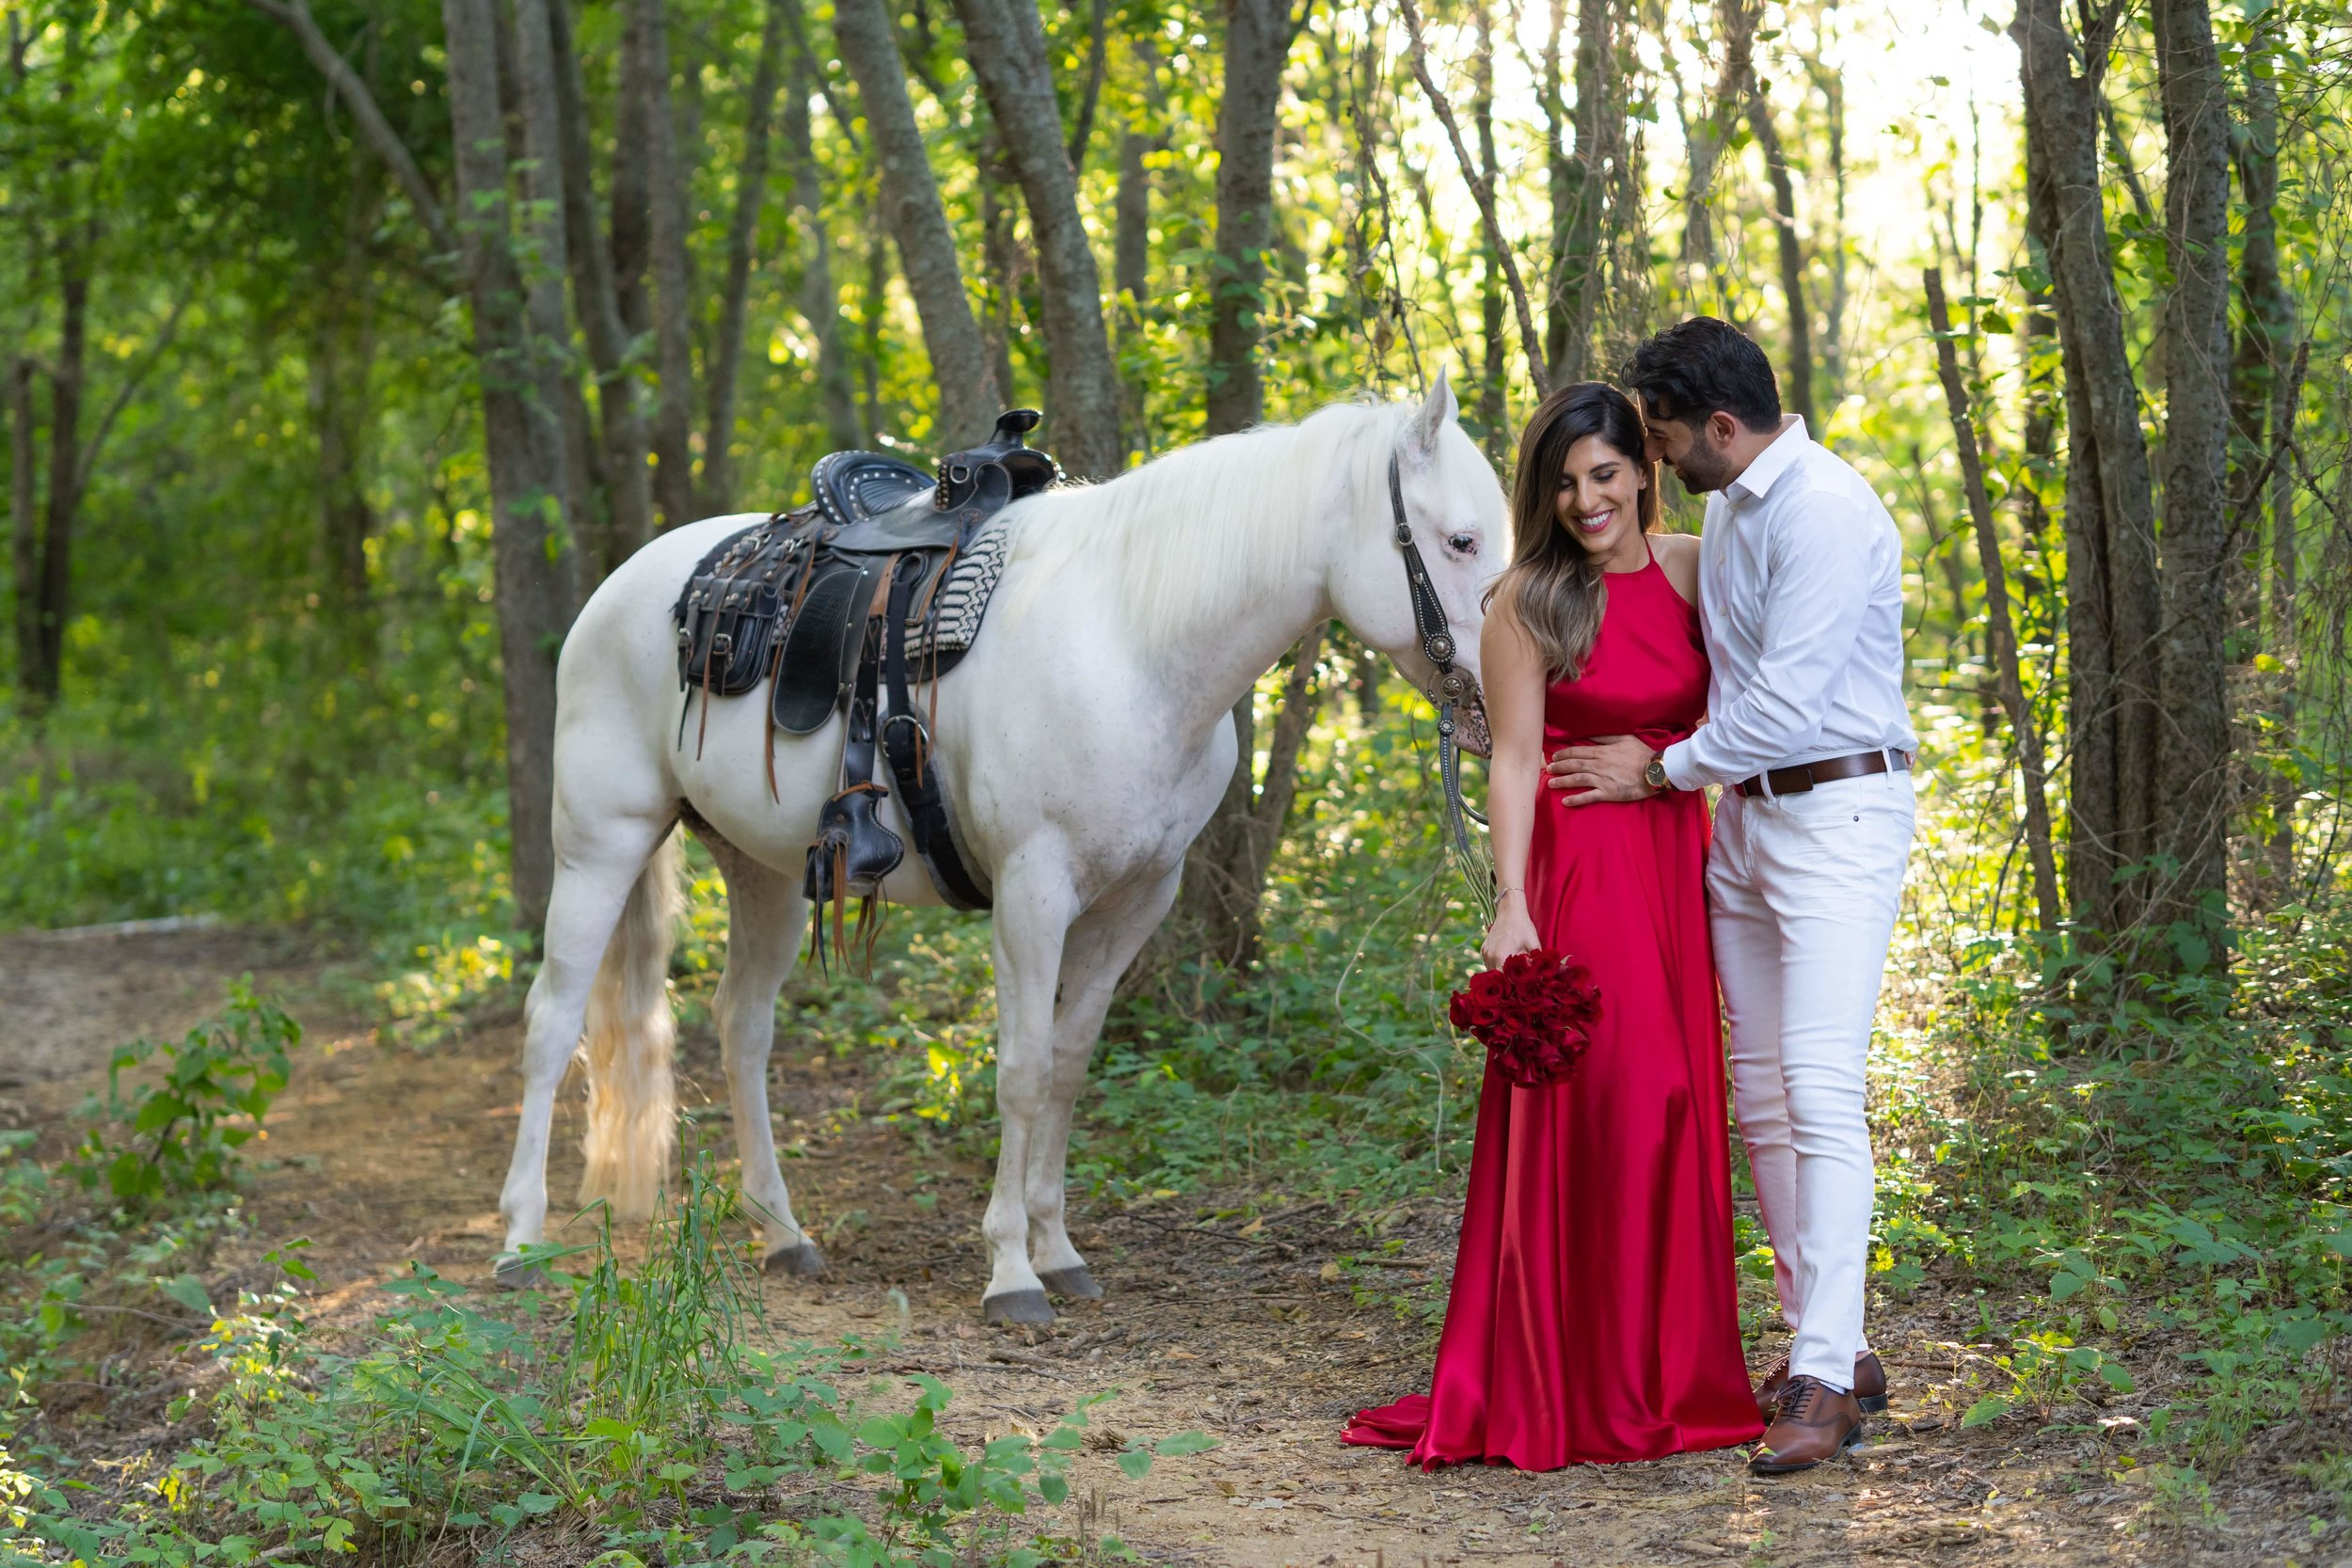 Engagement Photography Services Lucas, TX - Newly engaged couple going horseback riding through the woods.